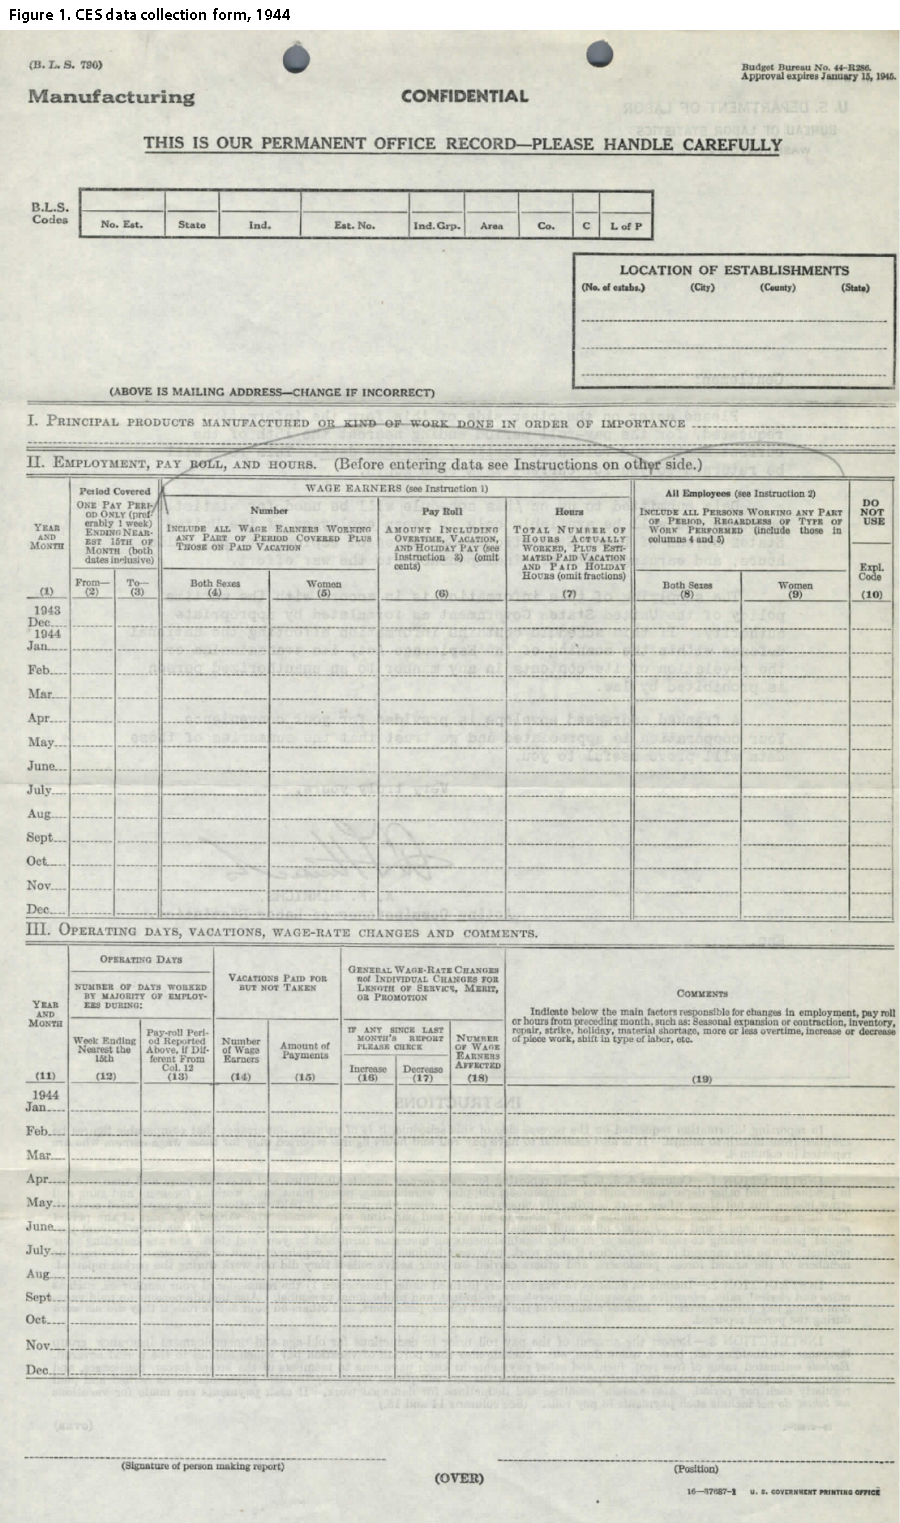 CES 1944 collection form